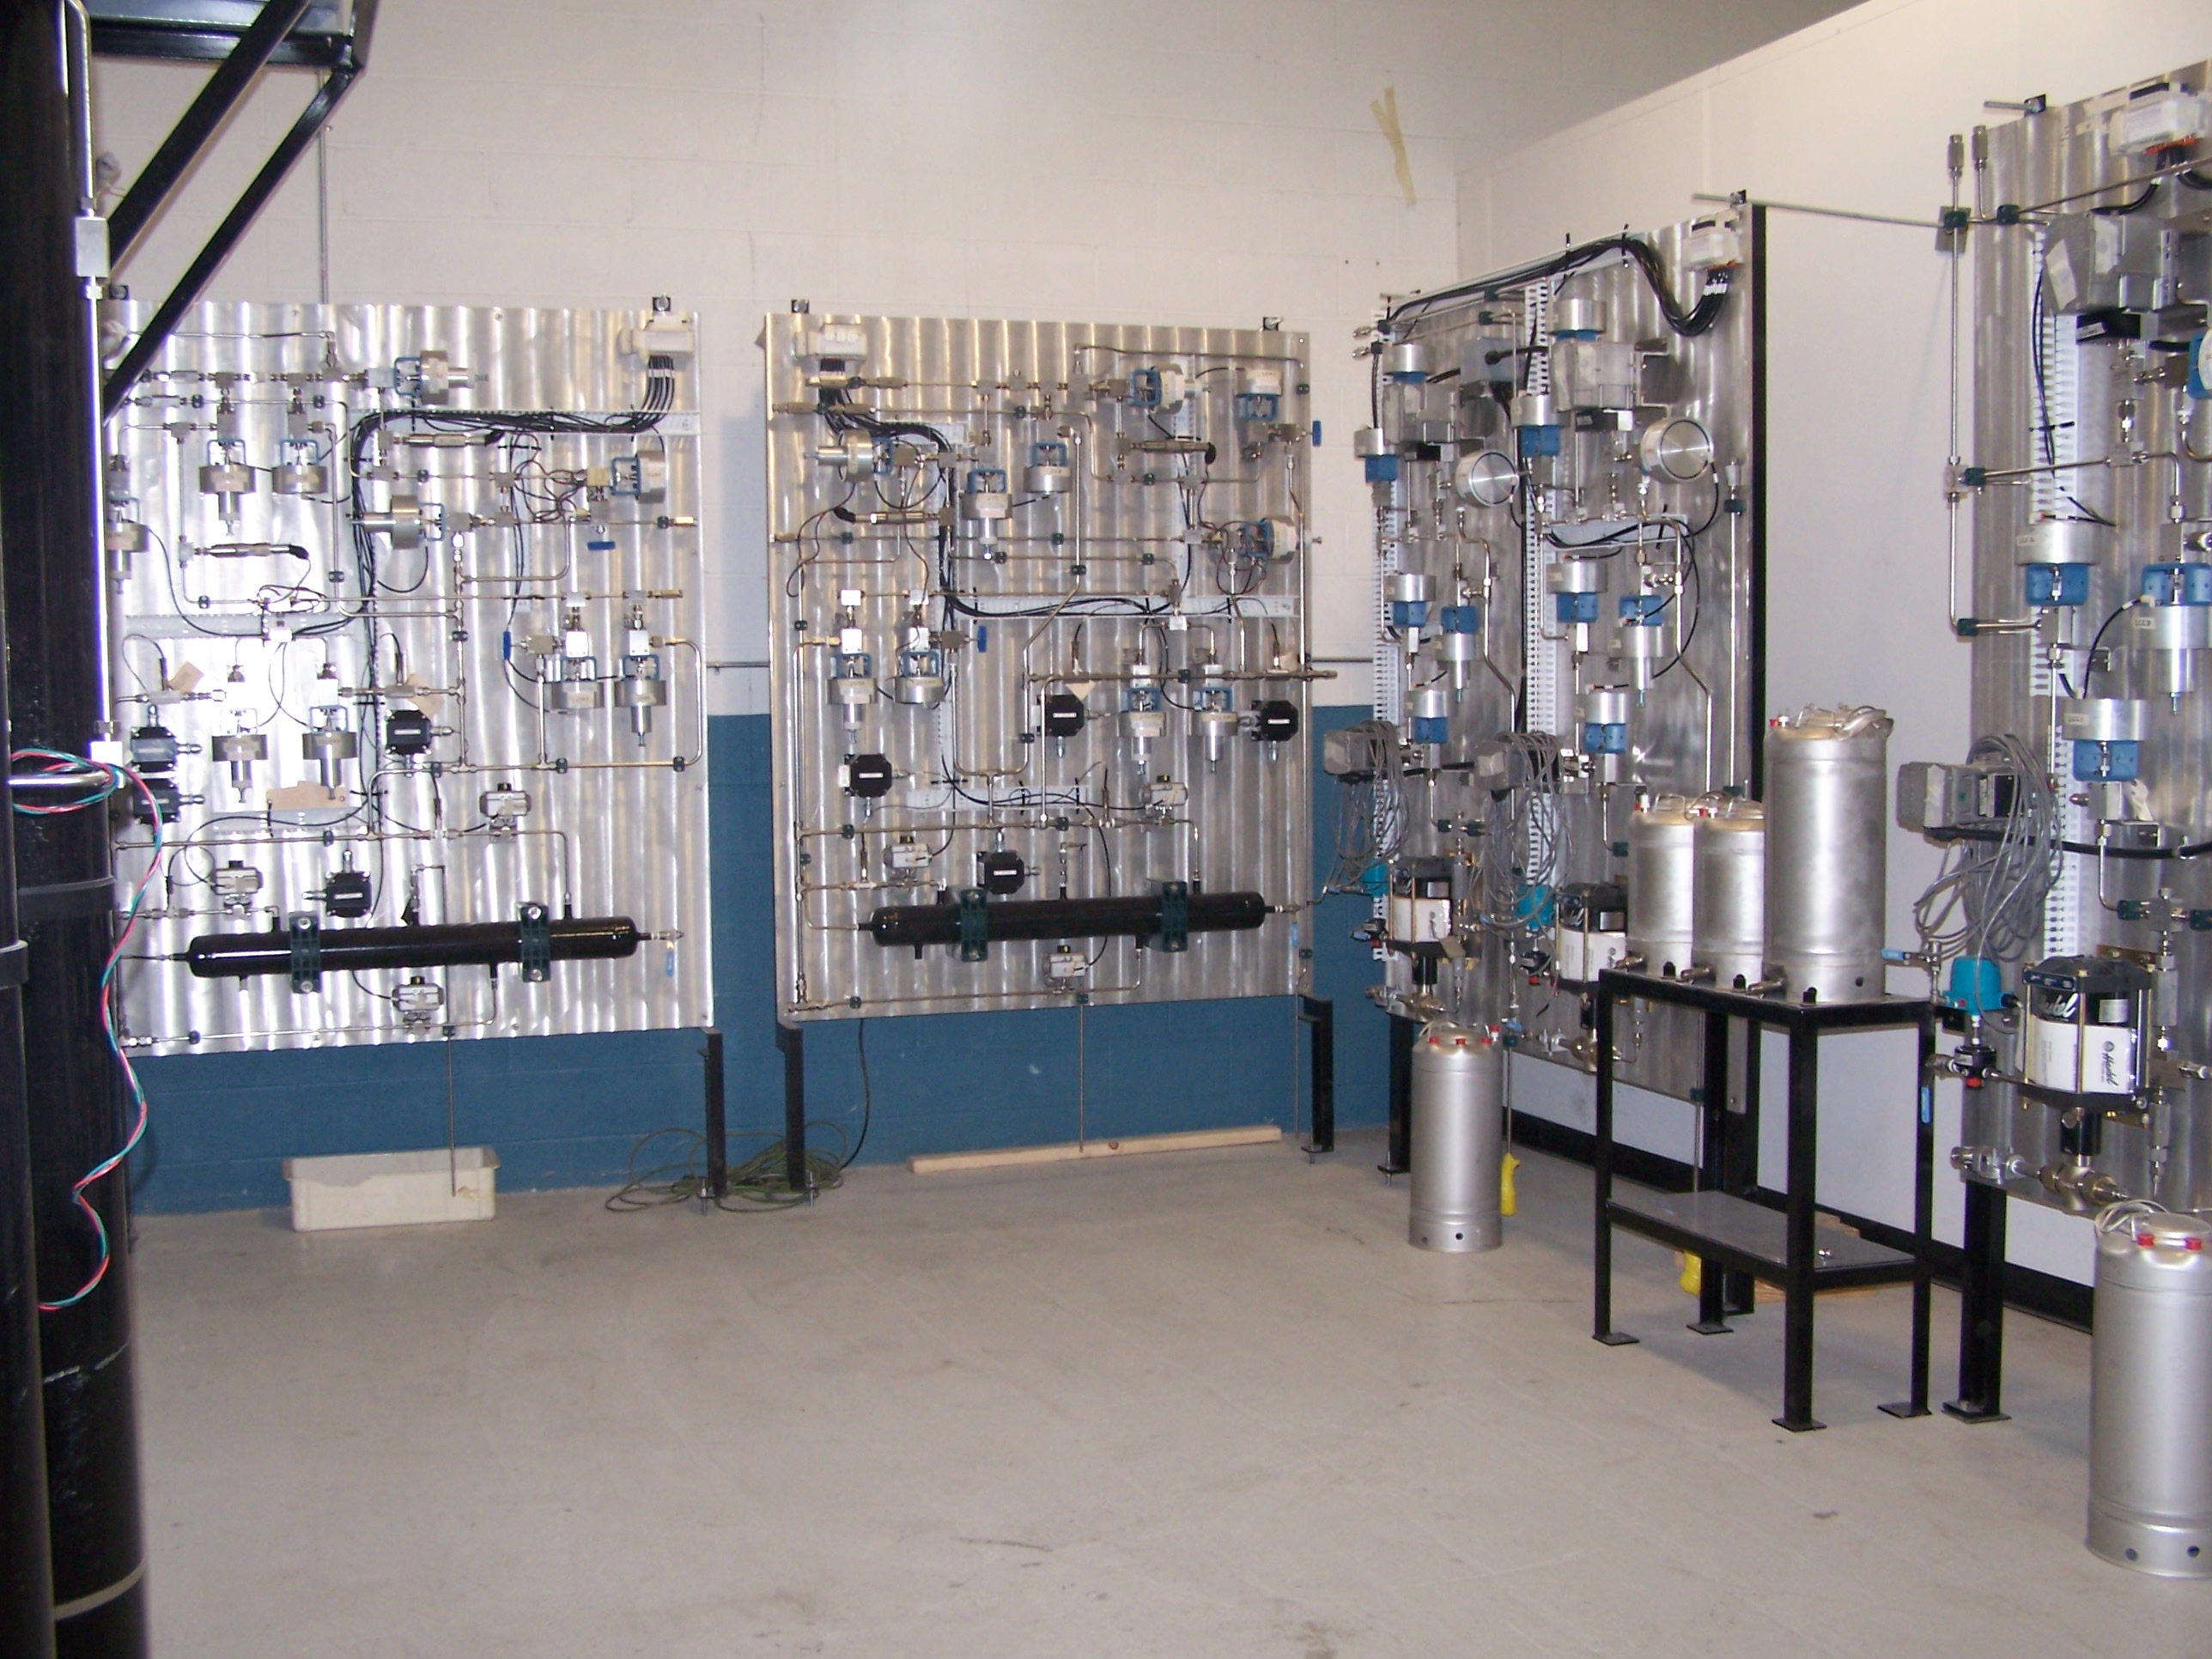 Wall Mounted High Pressure Test